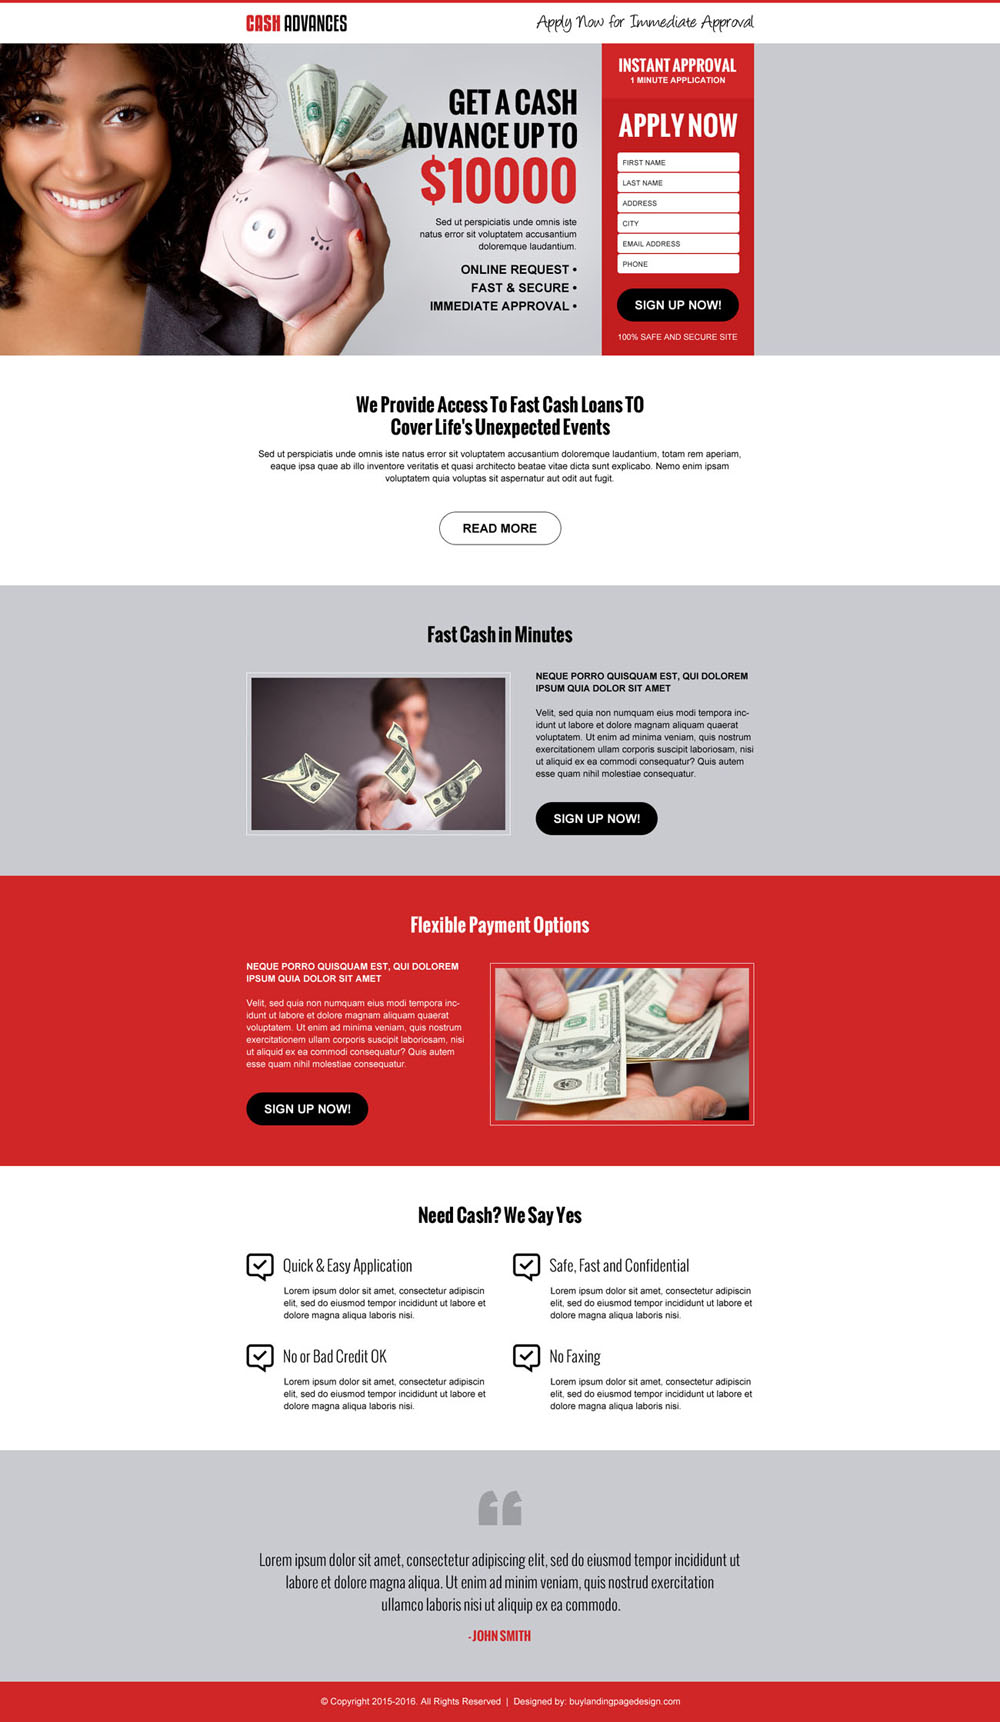 cash-loan-in-advance-lead-generation-responsive-landing-page-design-007_3